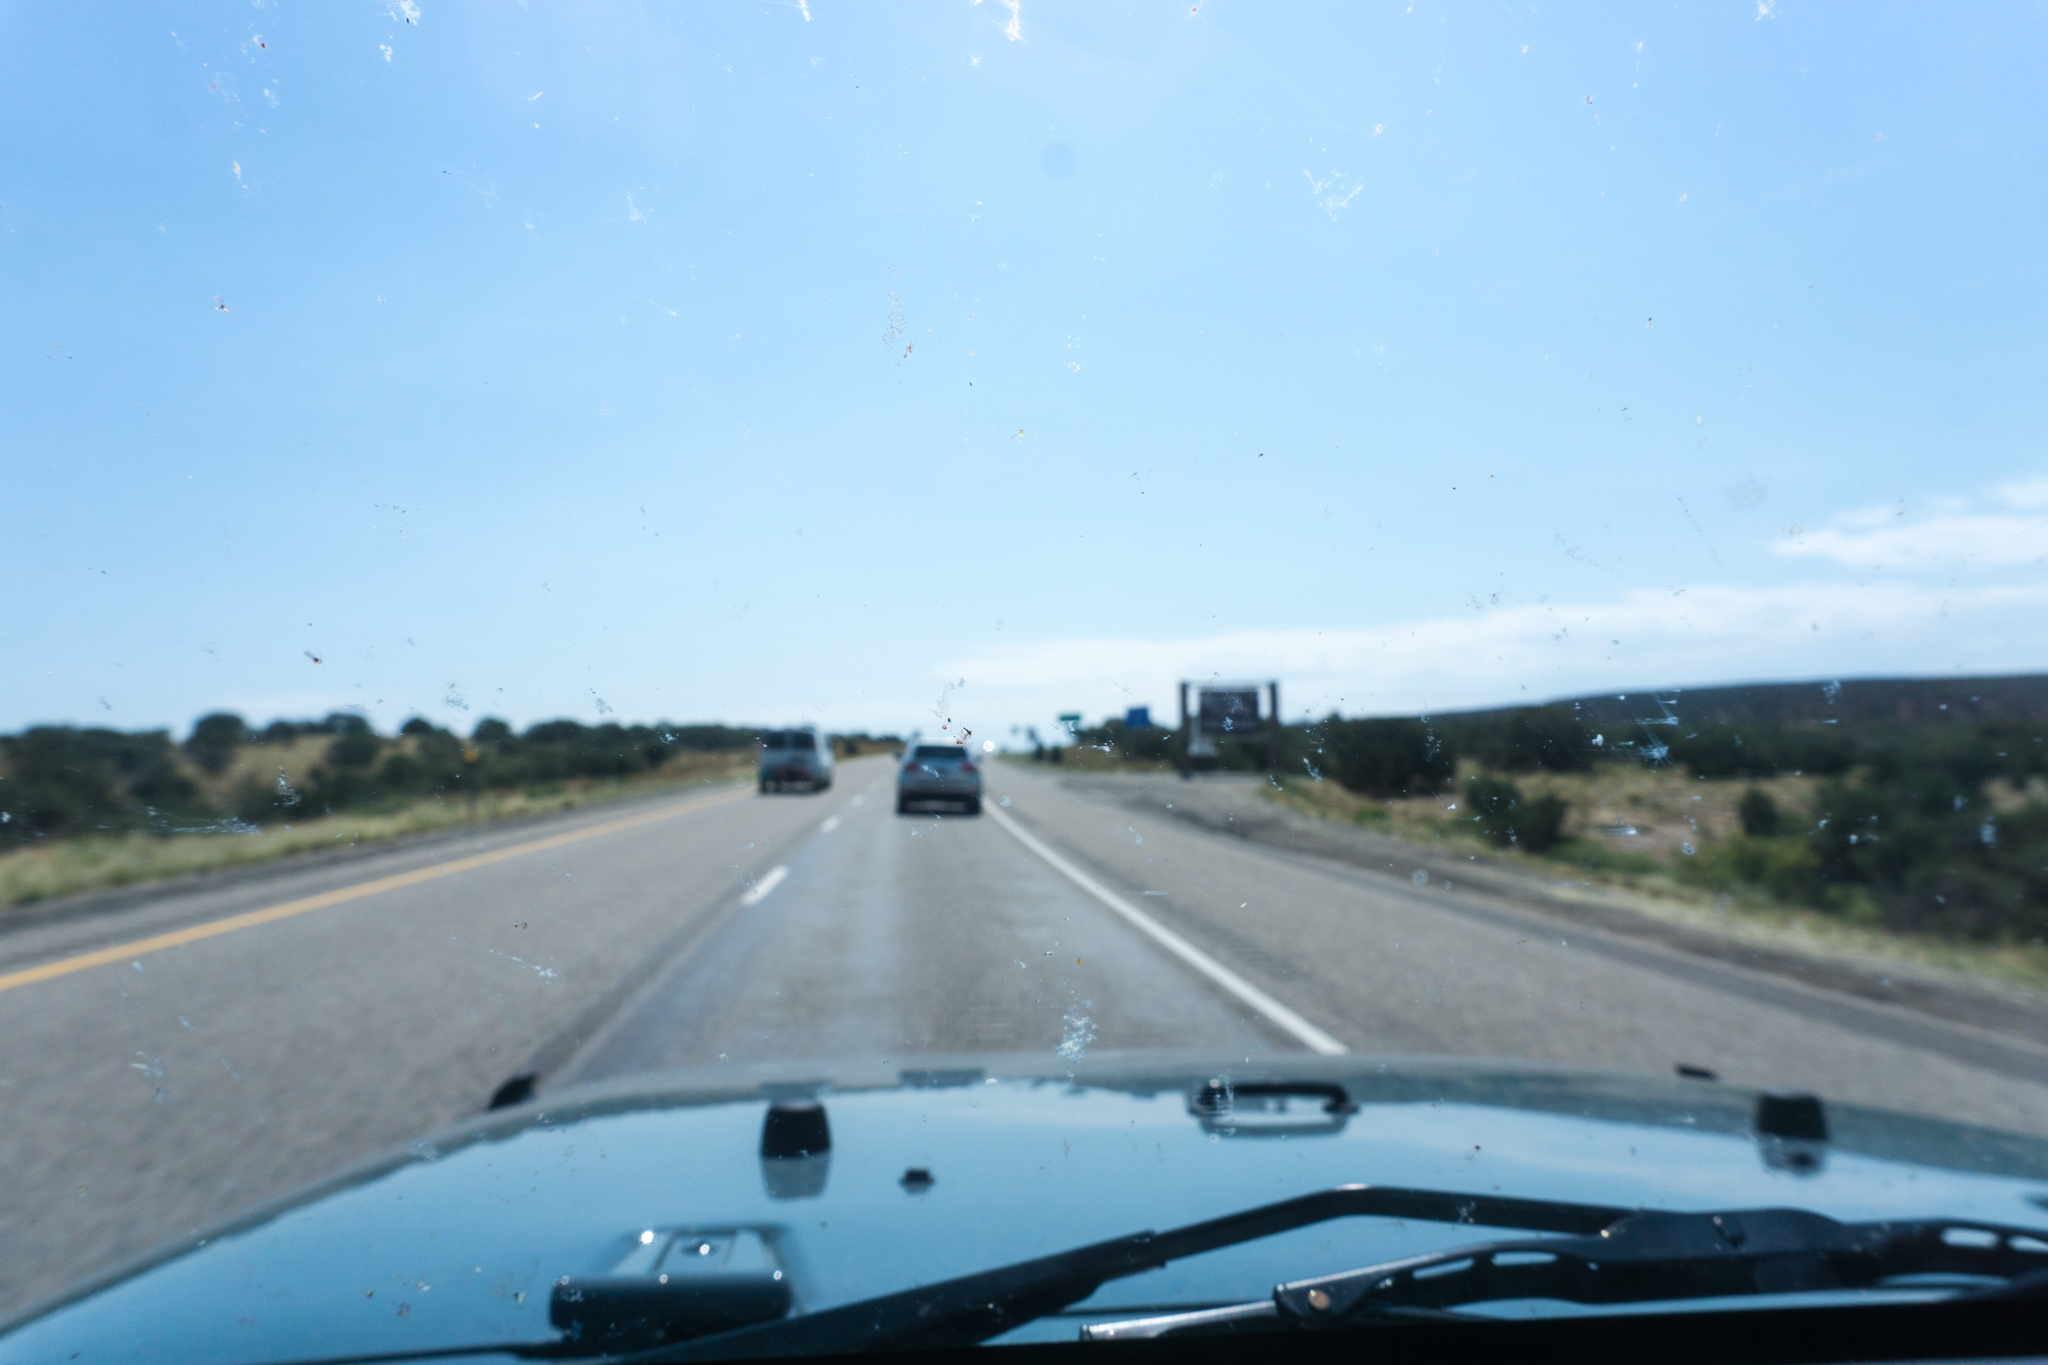 Entering Colorado. Splattered bugs say an in-focus hello.